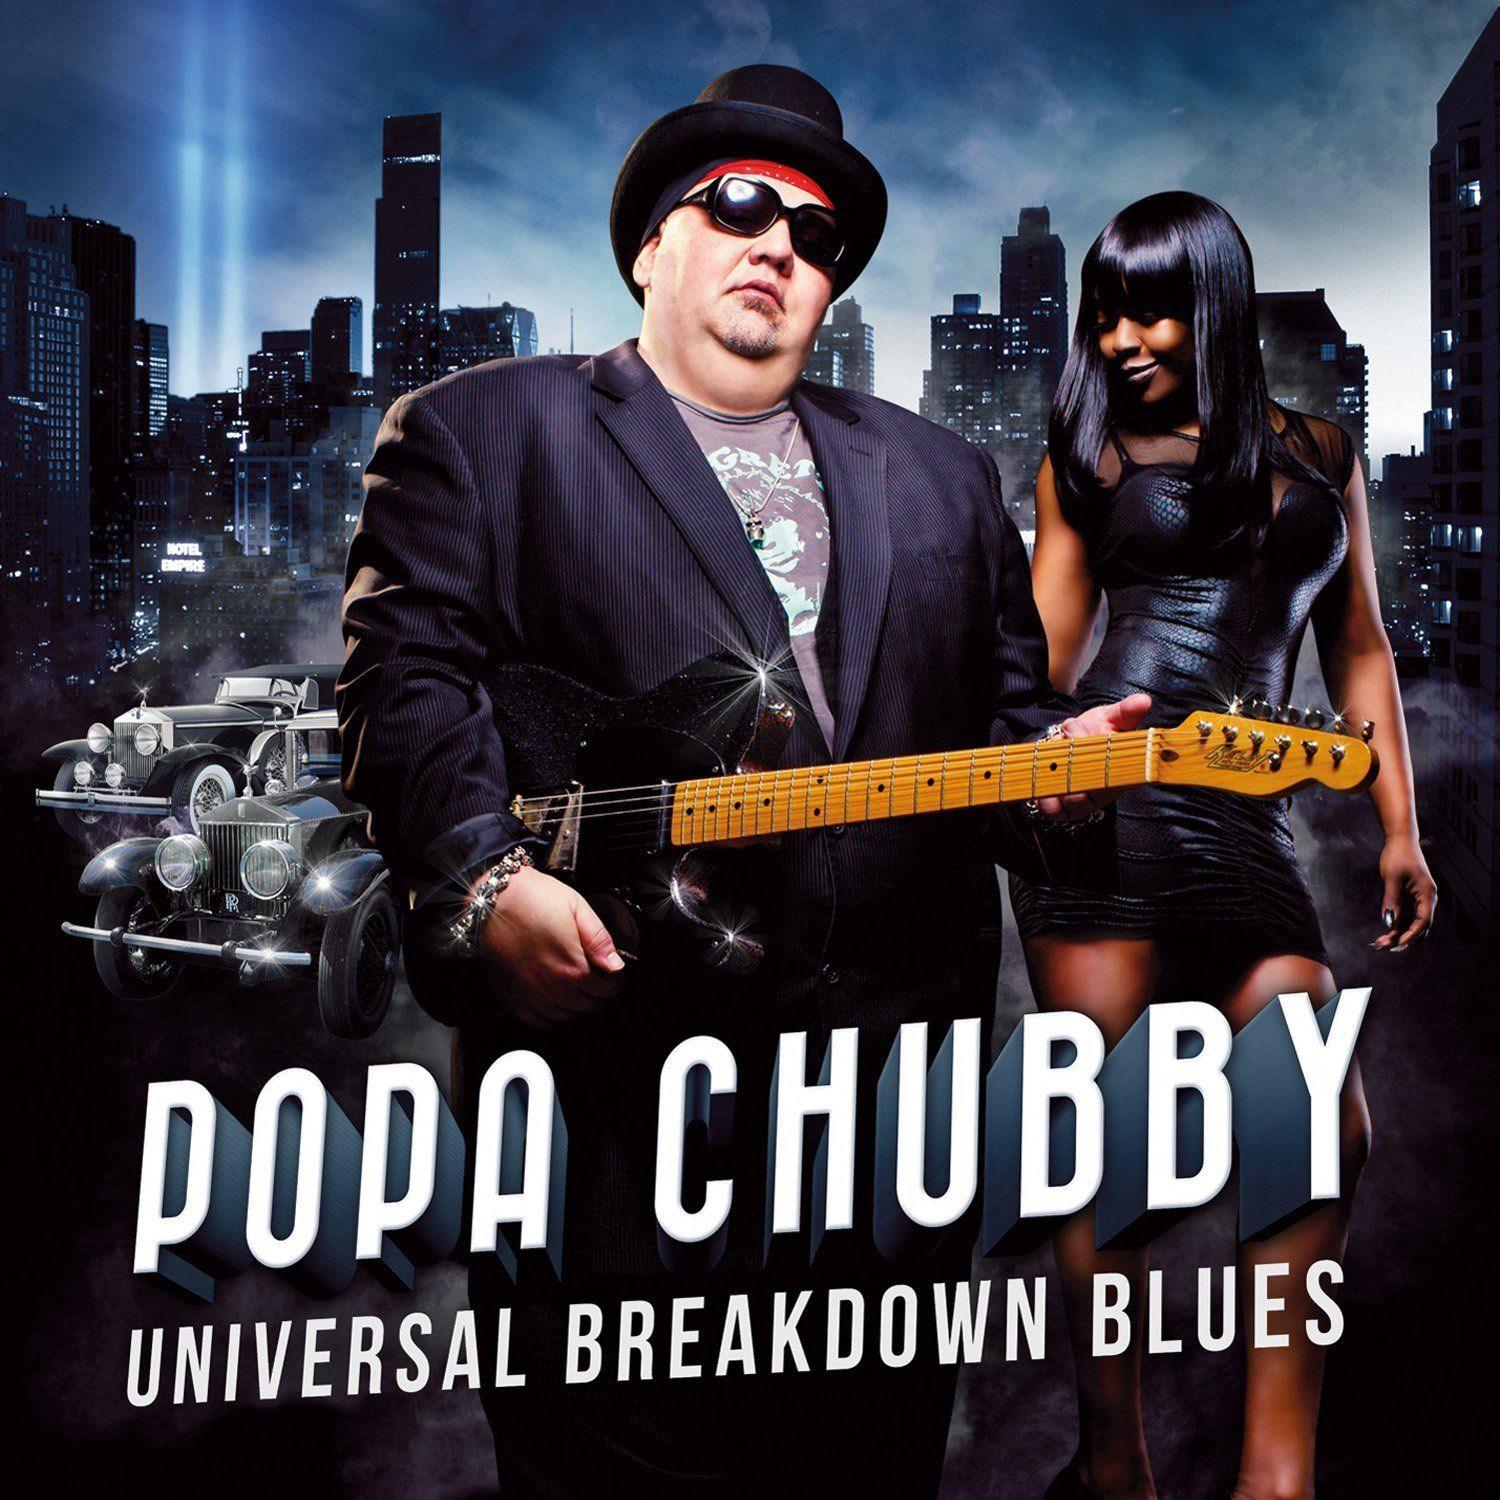 Popa Chubby - Universal Breakdown Blues